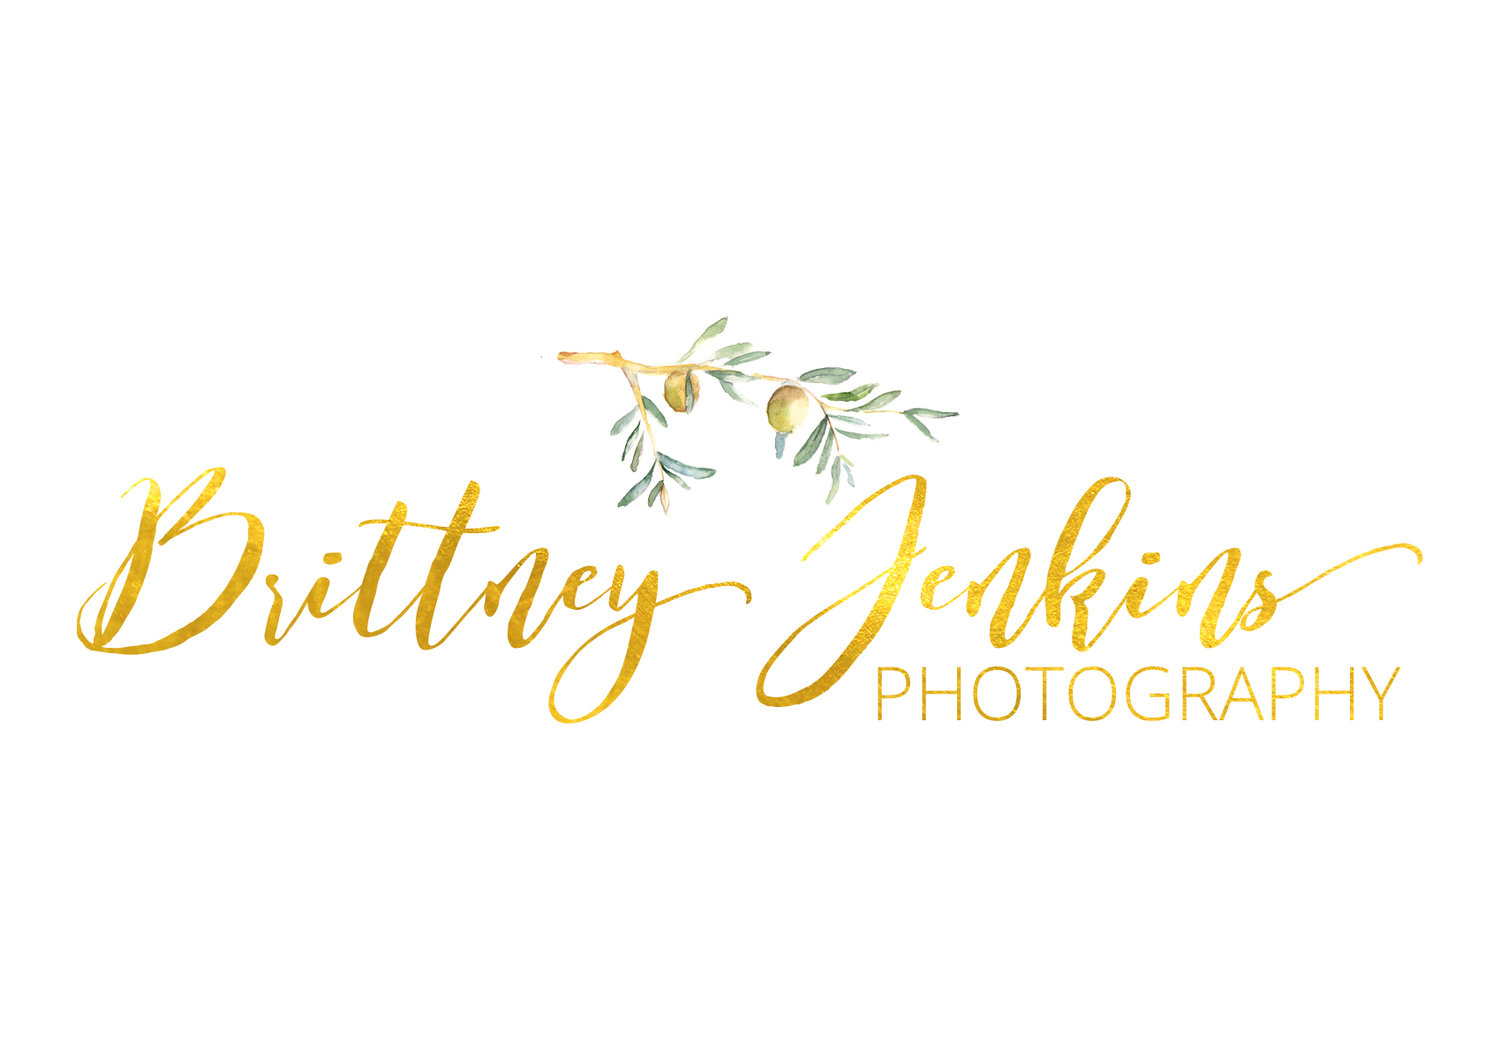 Brittney Jenkins Photography